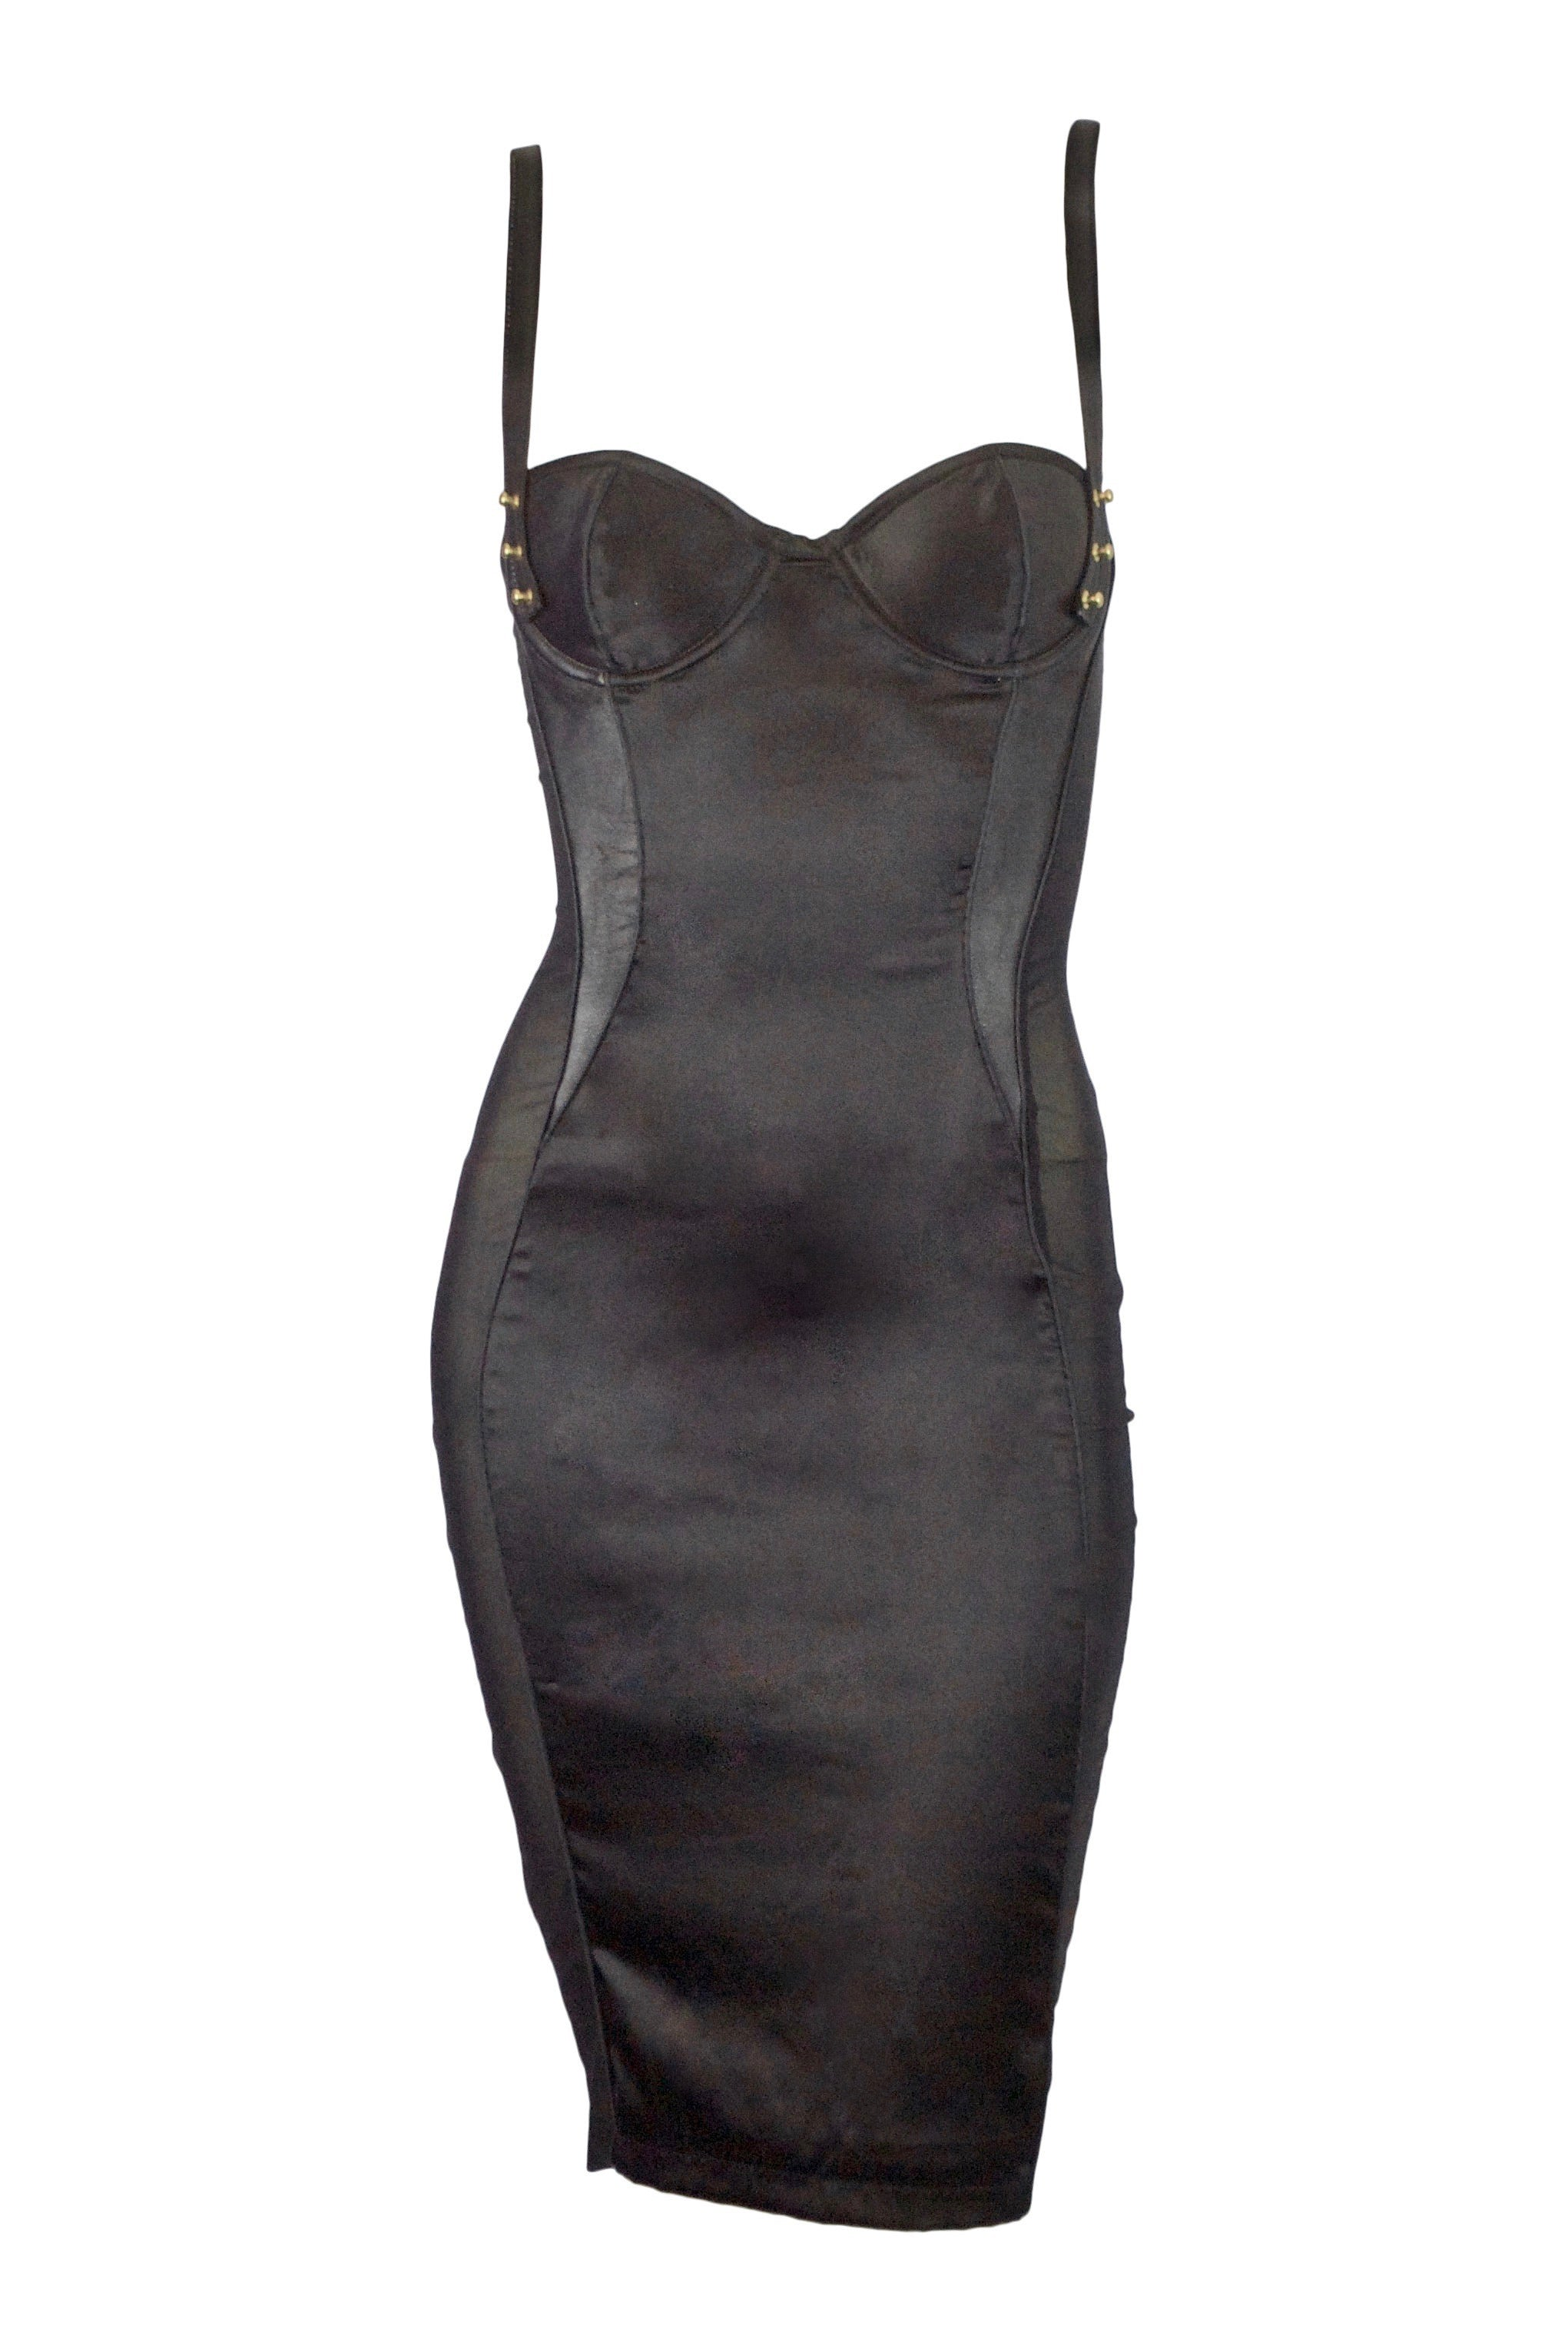 Lola 'n' Leather contour dress - Available now